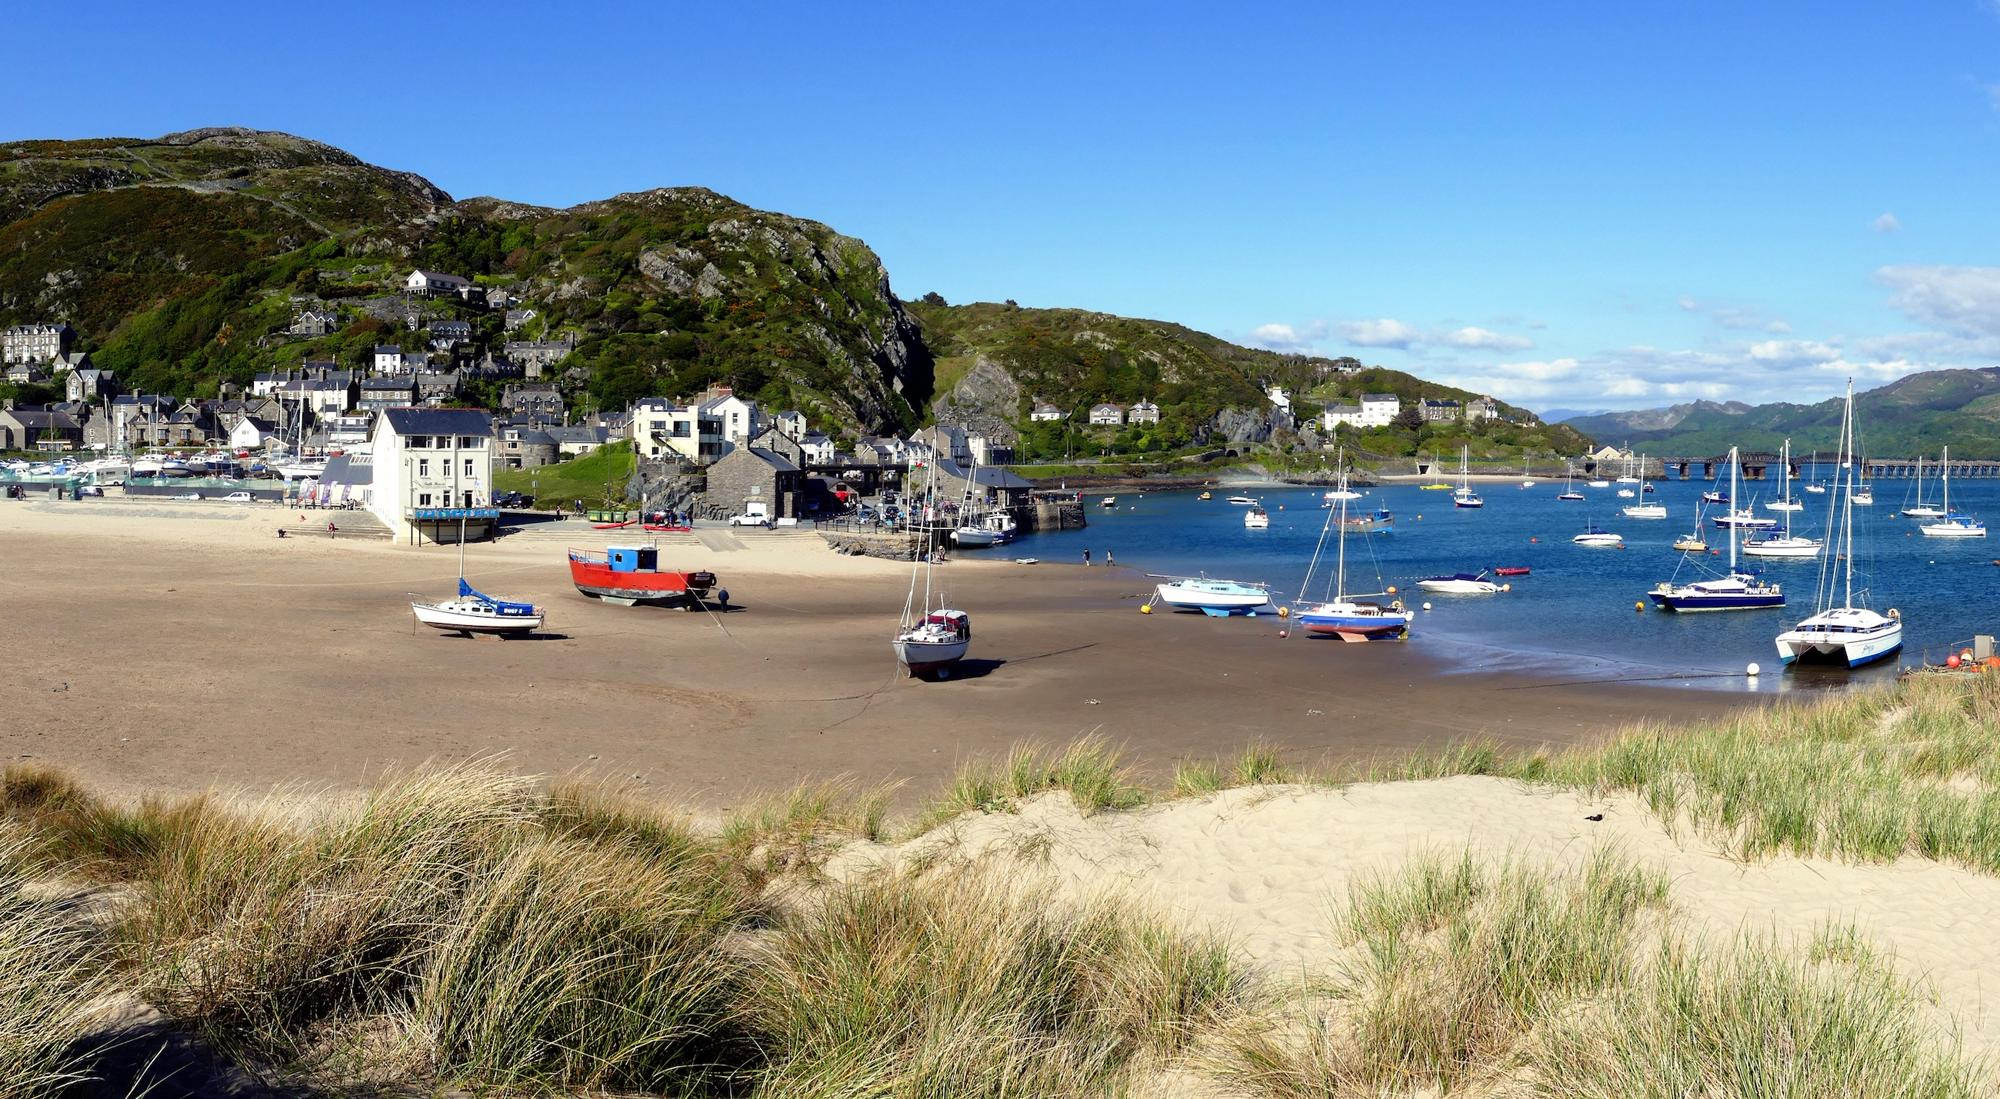 Barmouth Camping | Campsites in Barmouth, North Wales